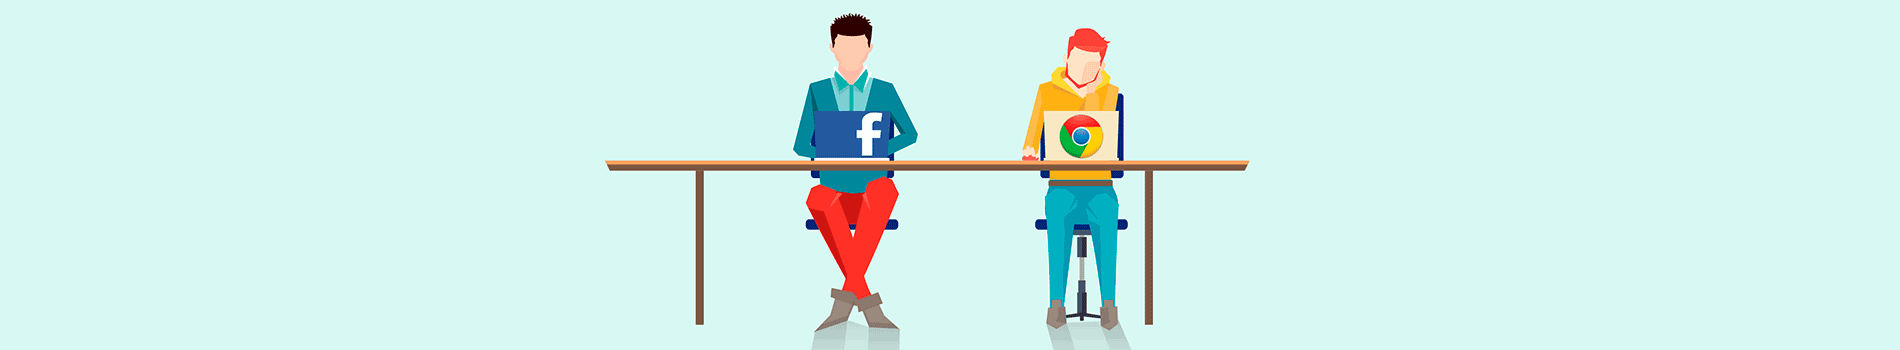 Two people sitting at desk with one Google Laptop and one with a Facebook laptop graphic design image